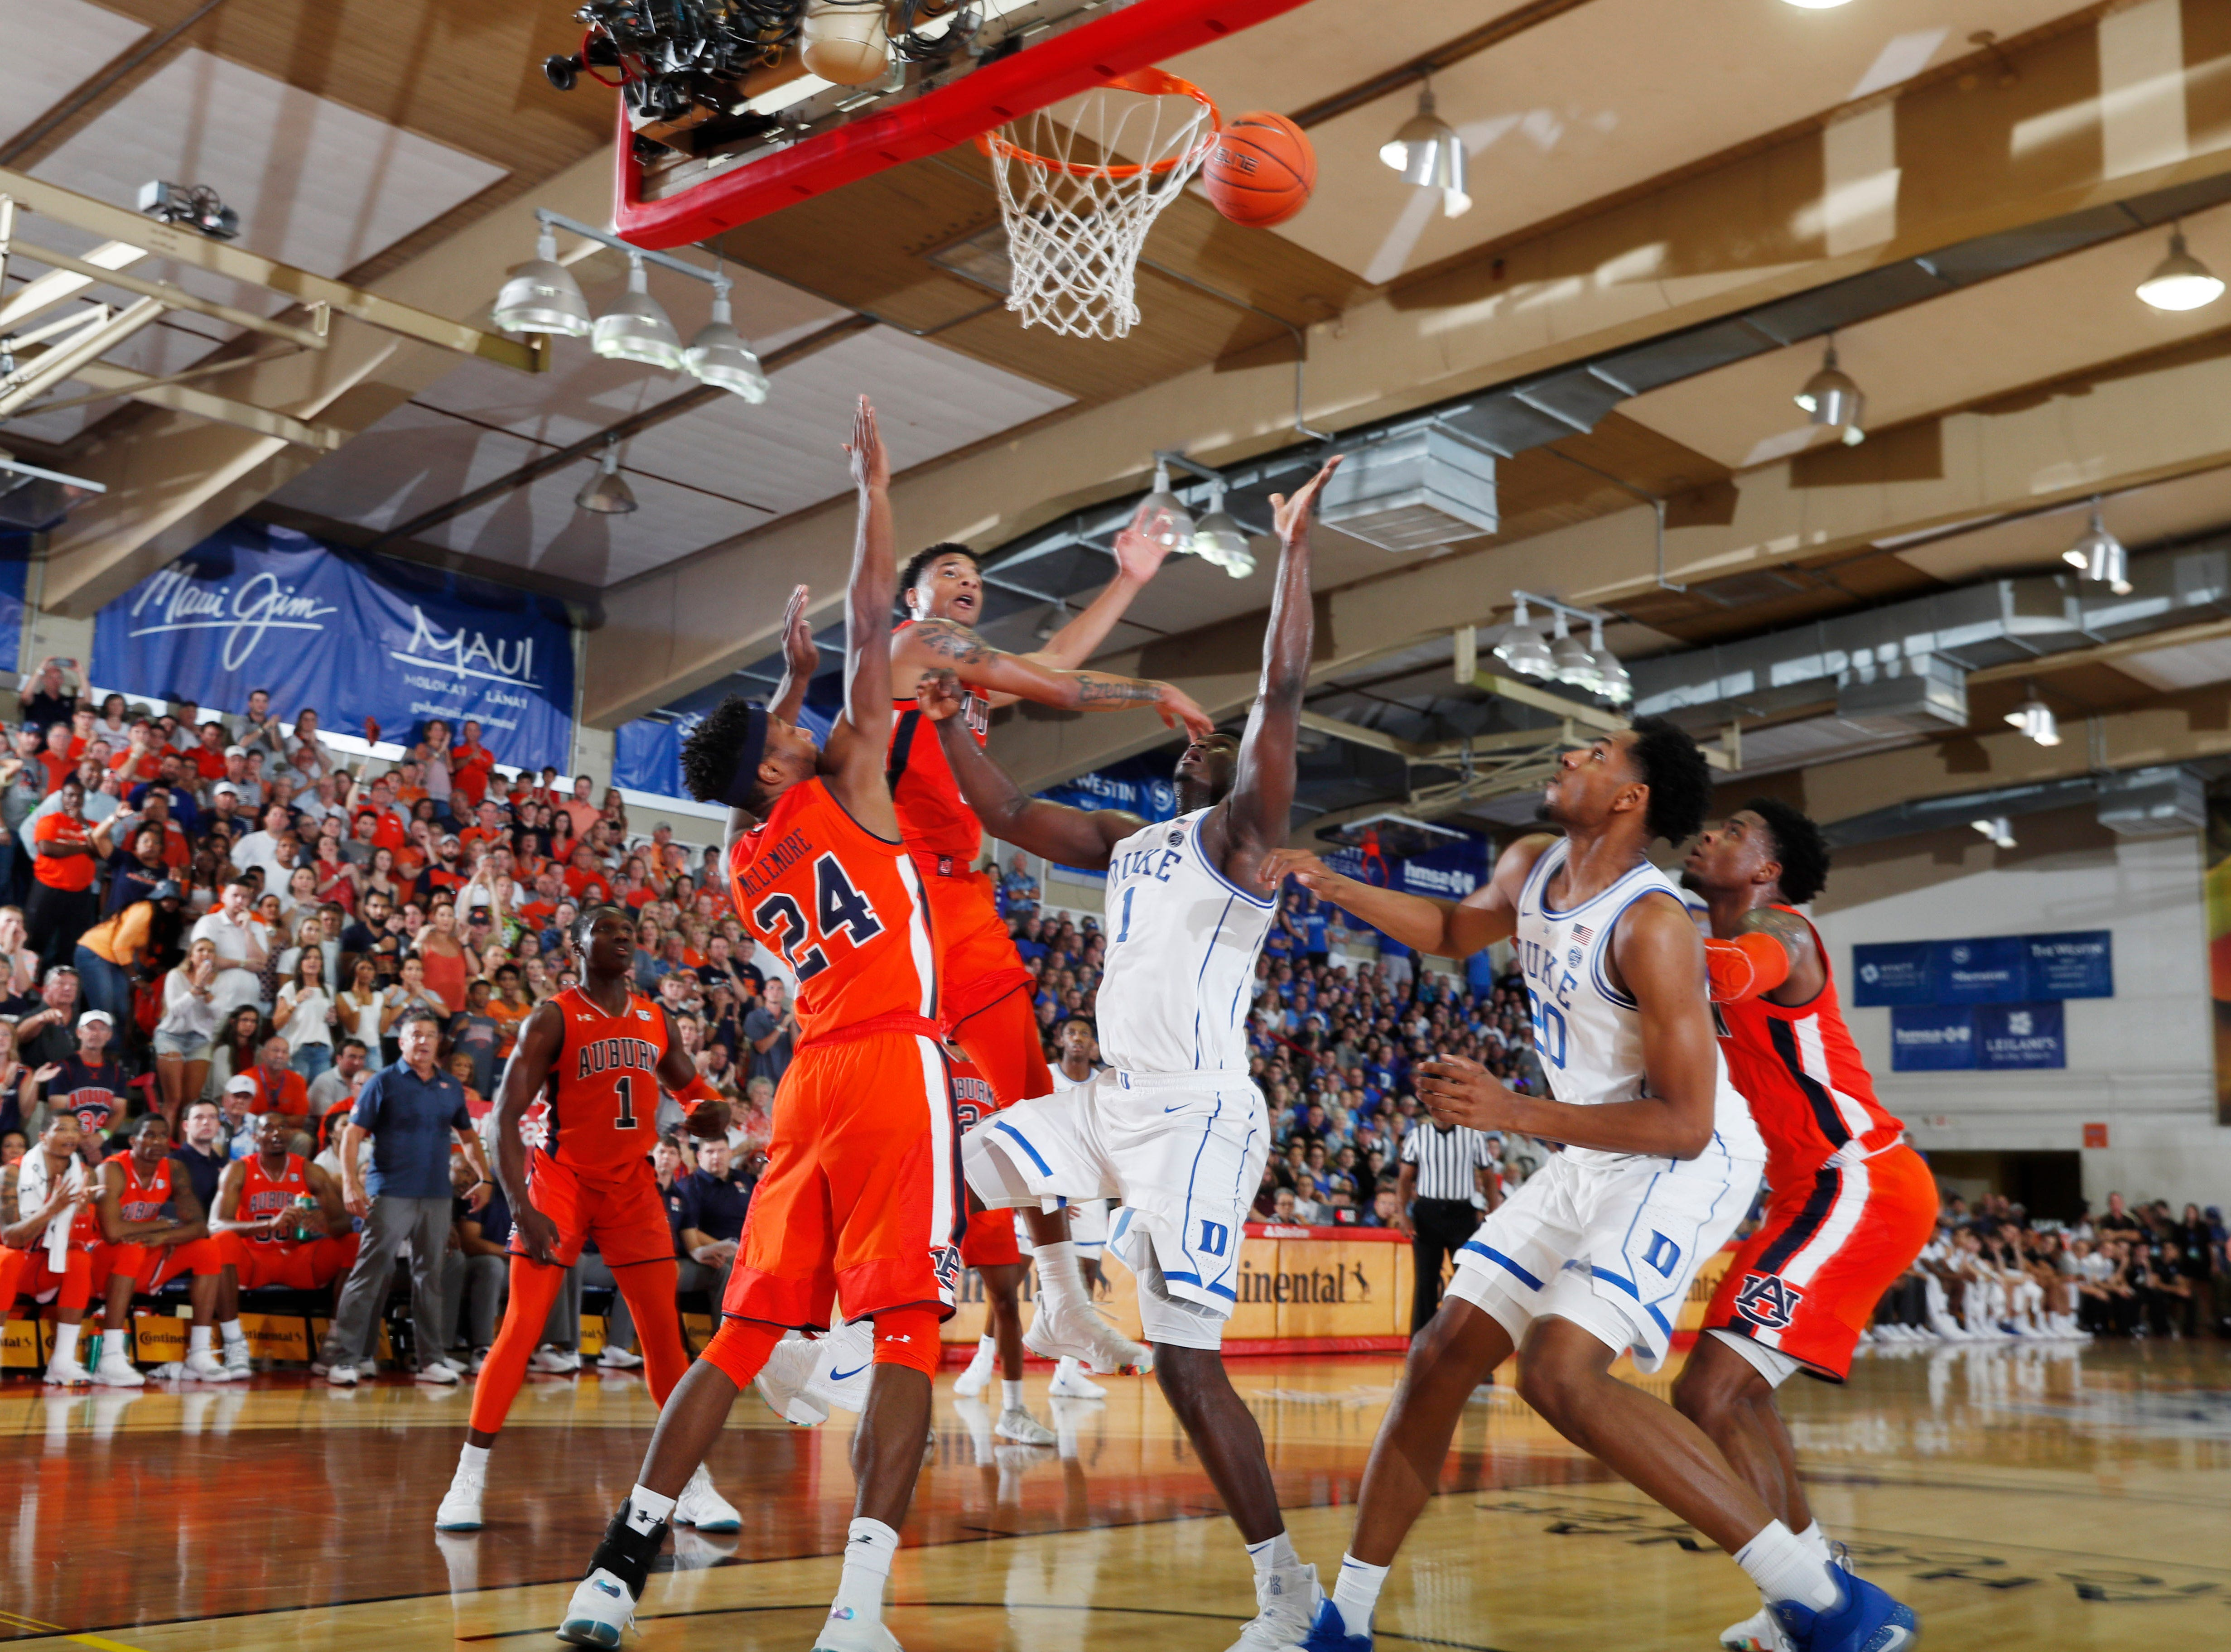 Nov 20, 2018; Lahaina, HI, USA; Duke Blue Devils forward Zion Williamson (1) takes a shot against the Auburn Tigers in the first half during the second round of the Maui Jim Maui Invitational at Lahaina Civic Center. Mandatory Credit: Brian Spurlock-USA TODAY Sports